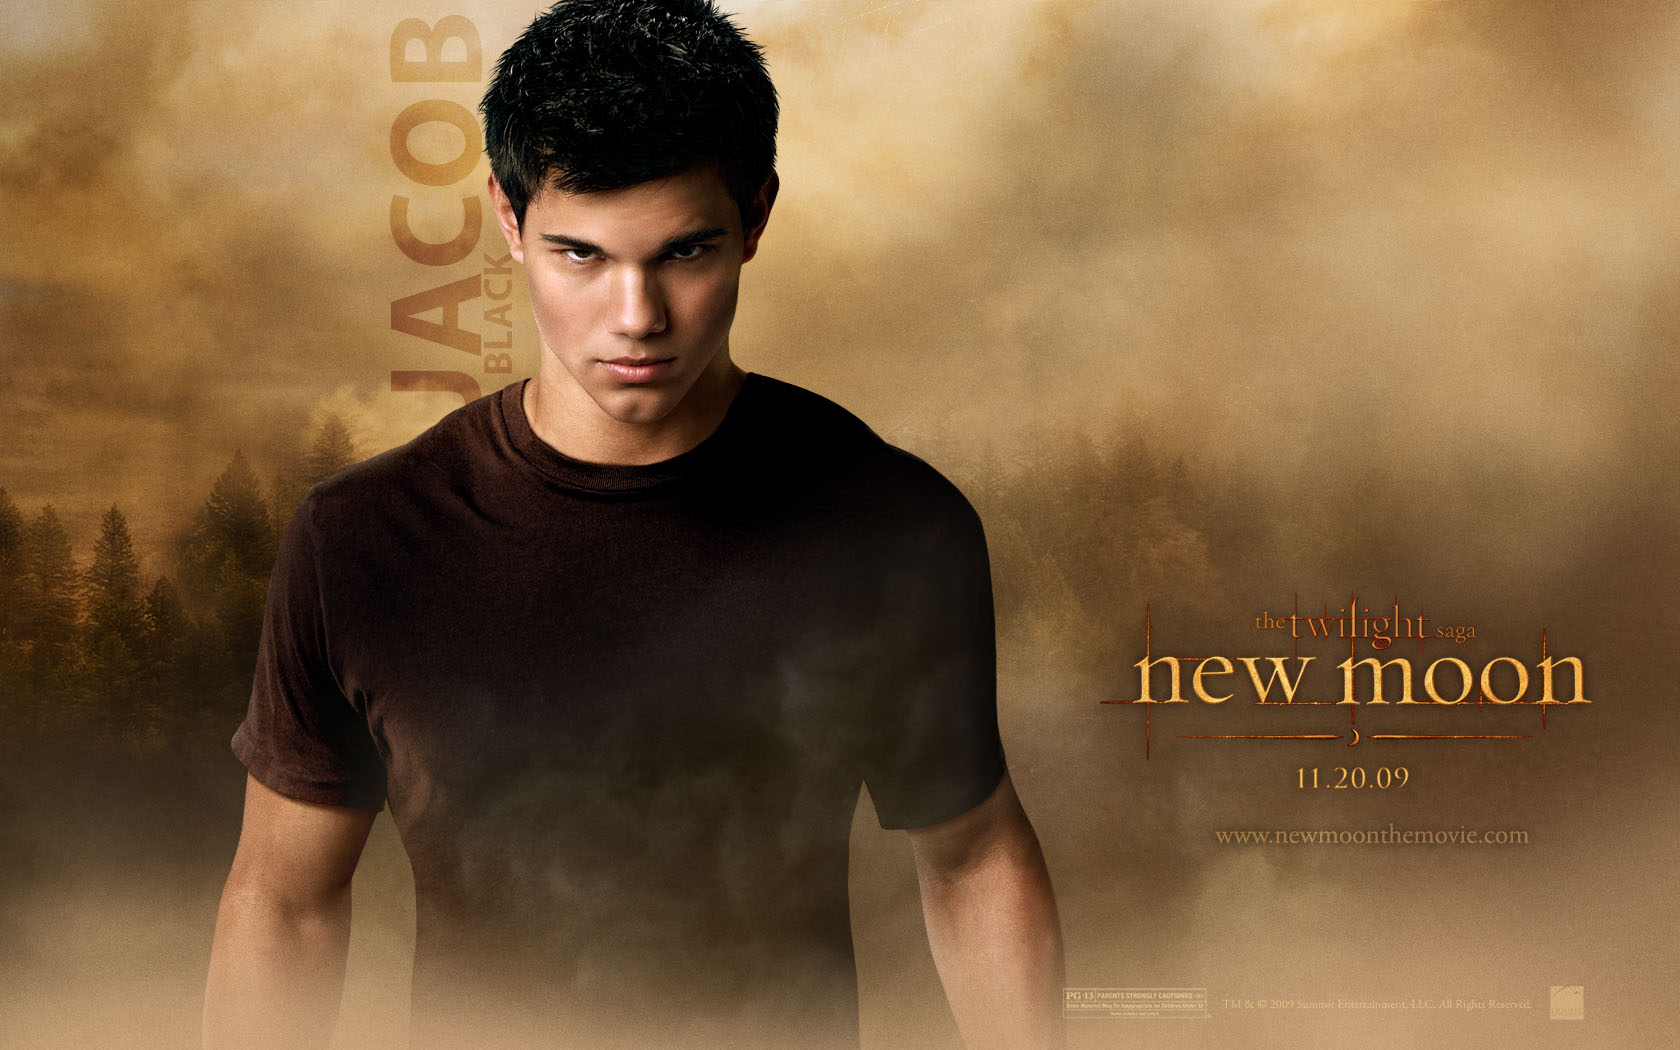 download Twilight New Moon Jacob Desktop Wallpaper [1680x1050 1680x1050